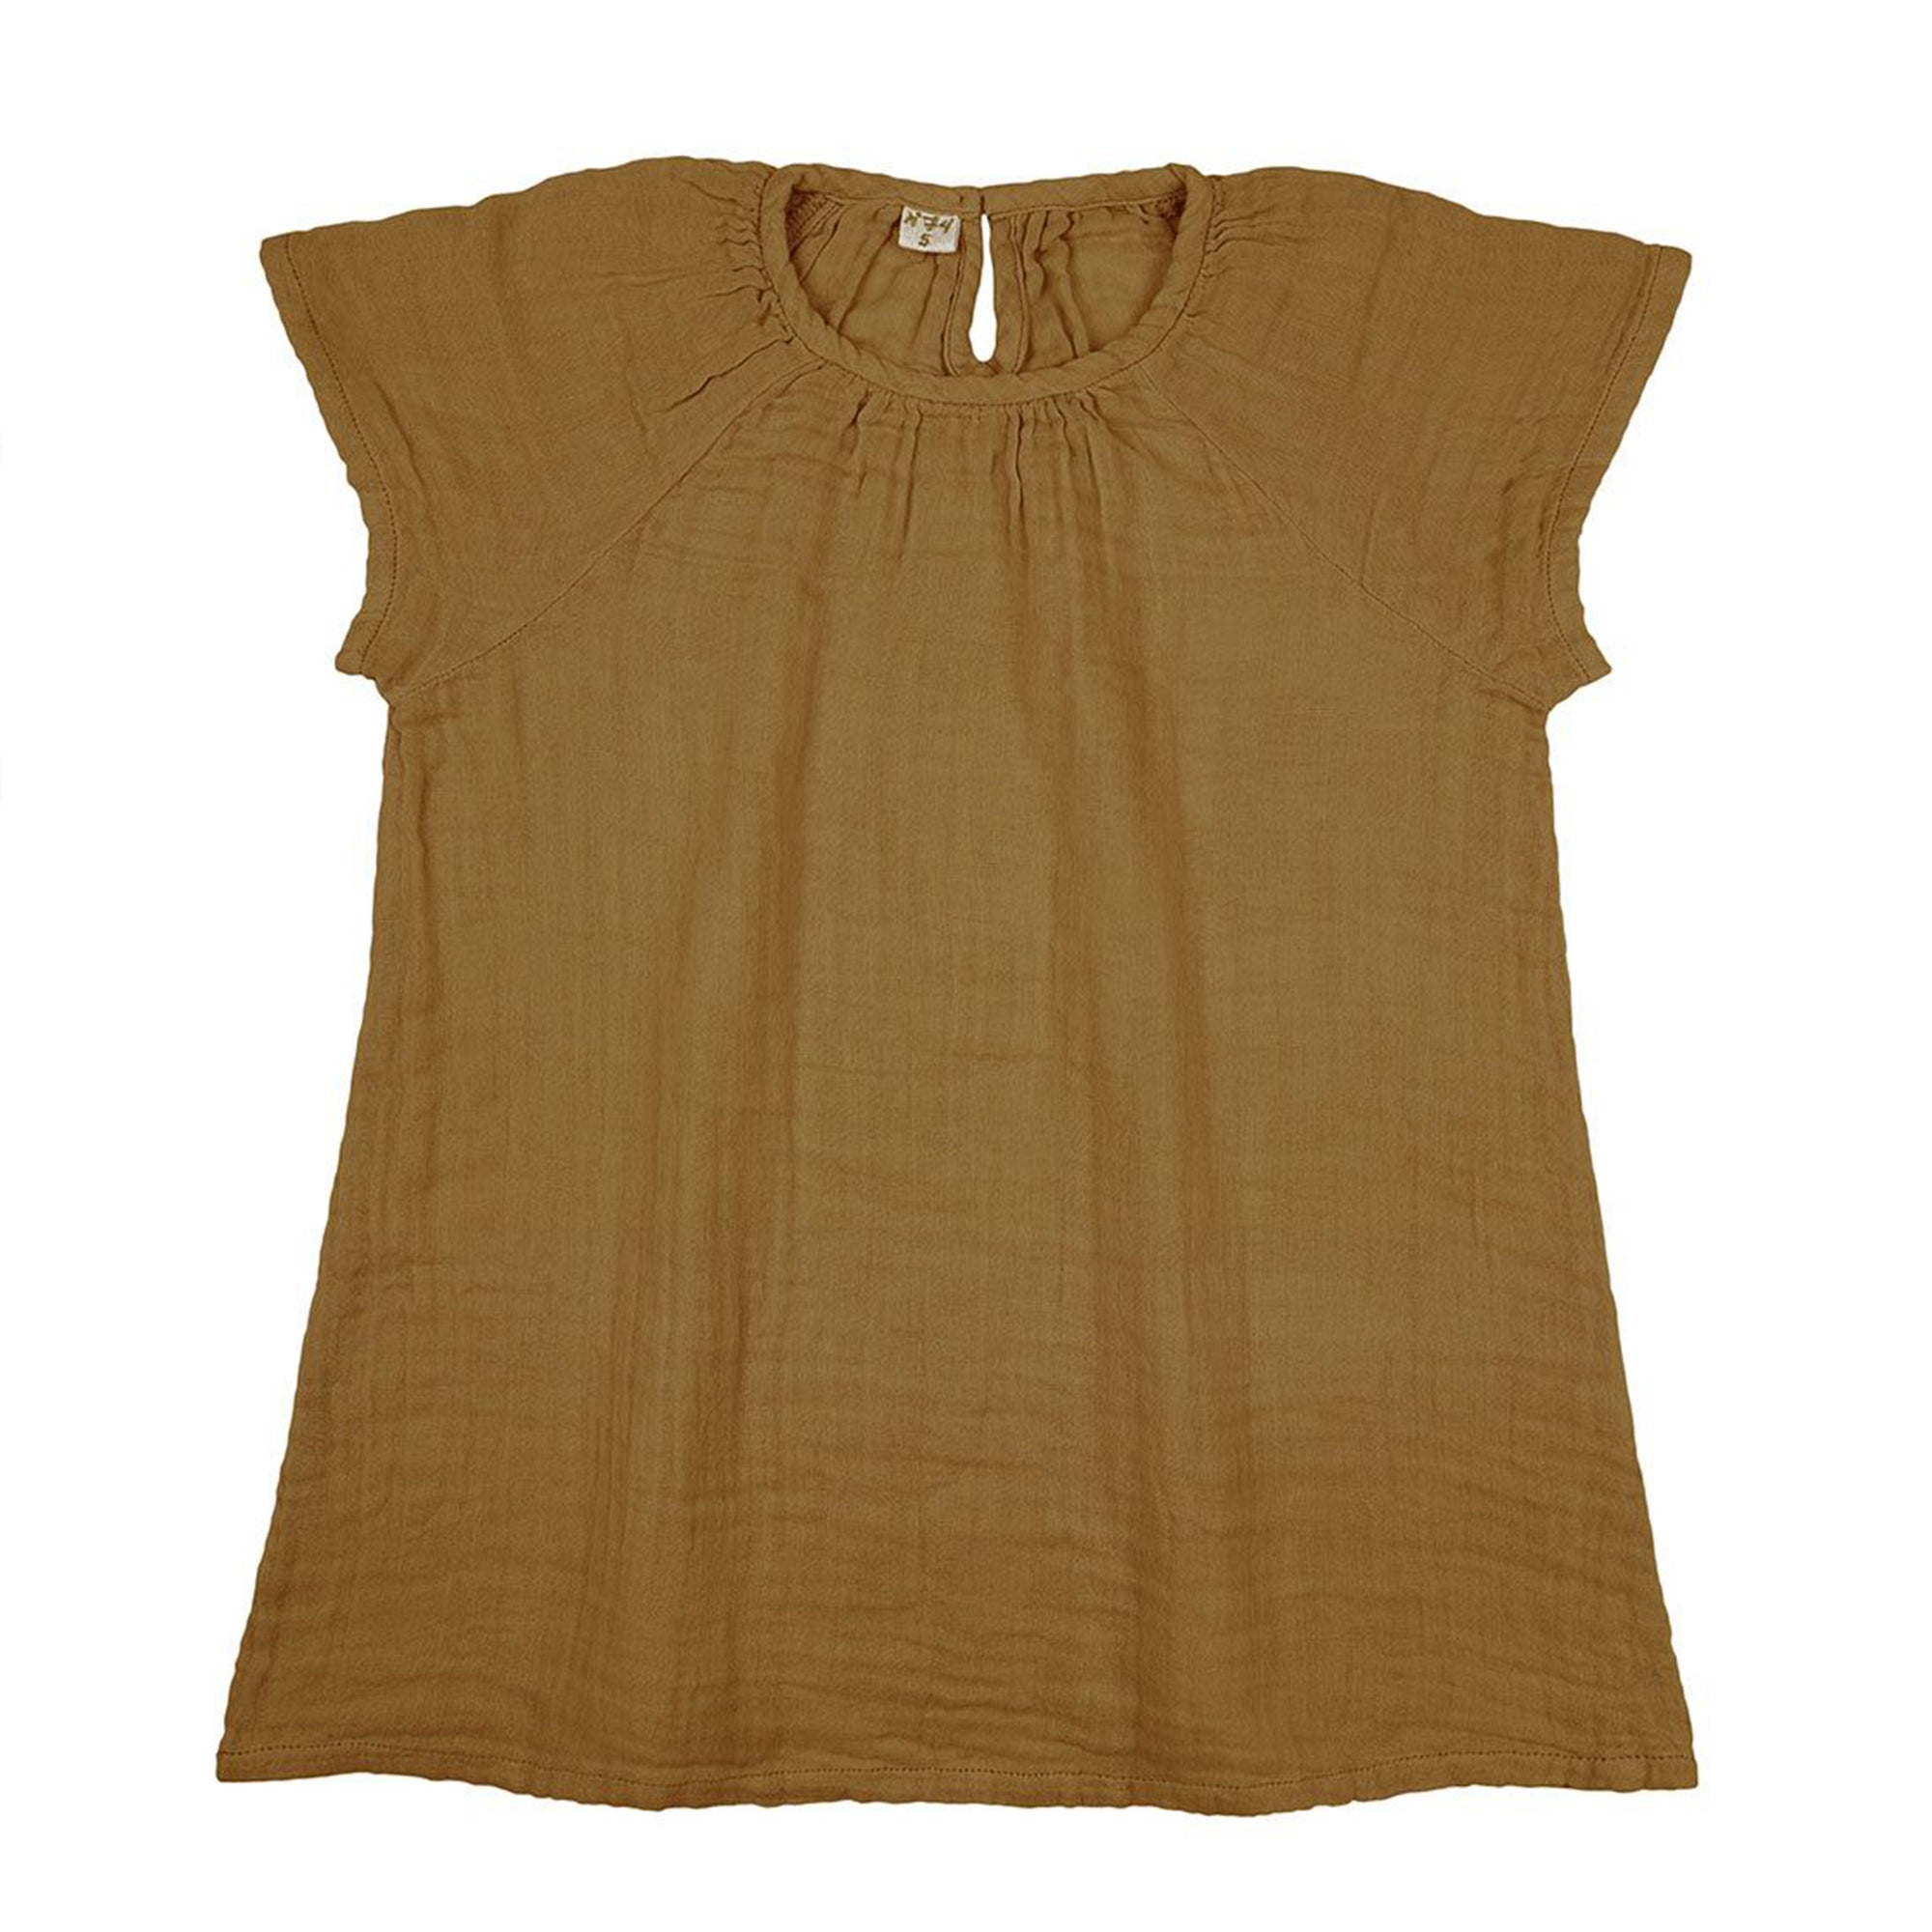 Numero 74 Clara Dress Gold - Scandi Minimal